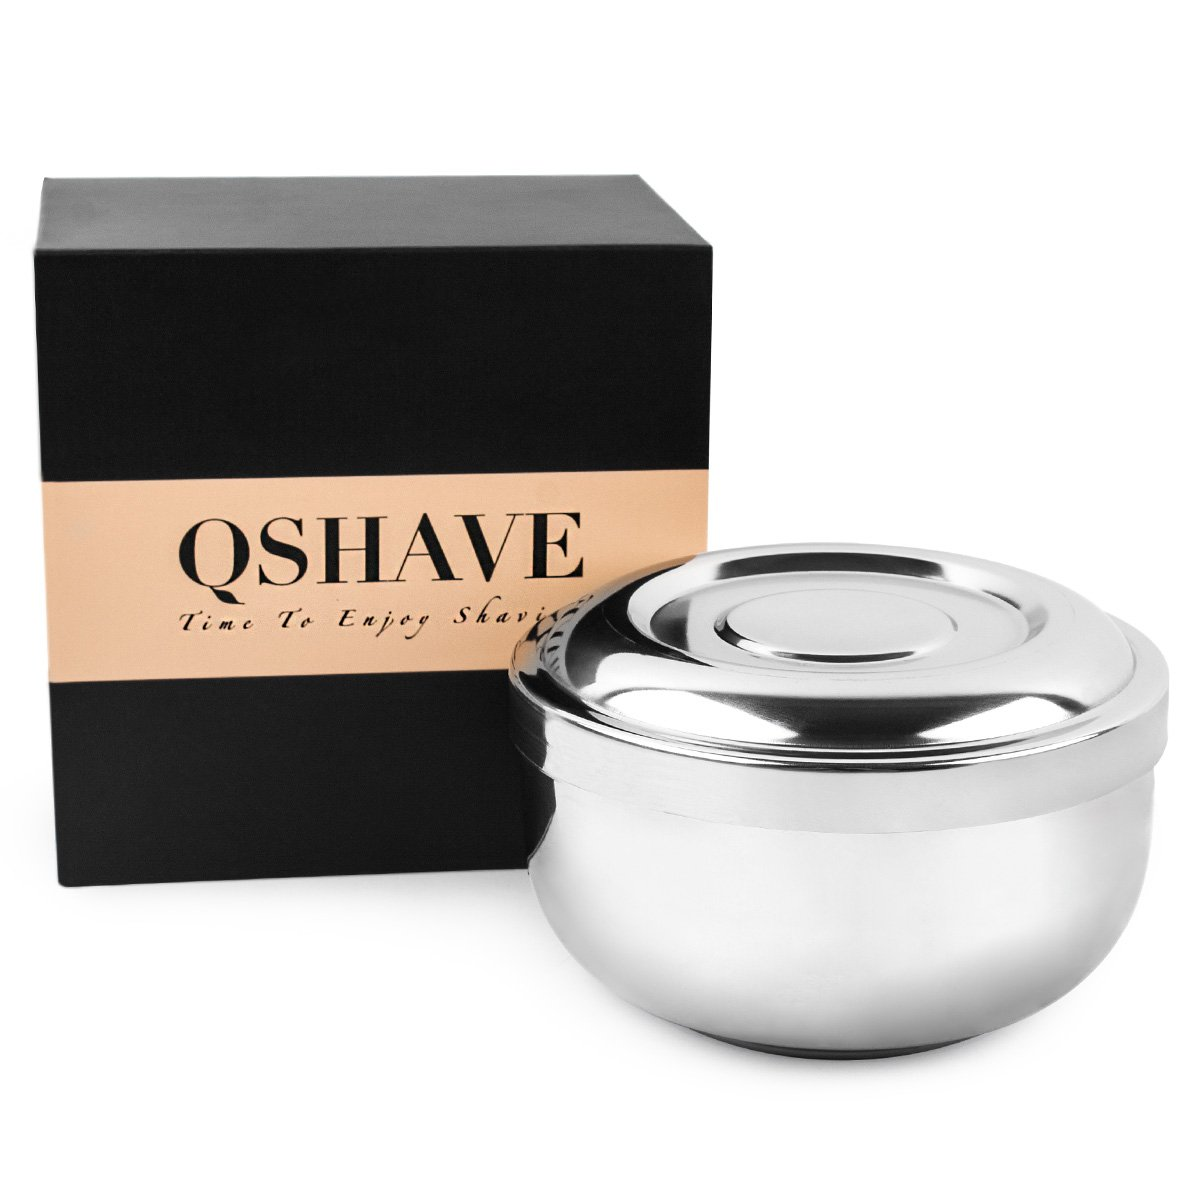 QShave Stainless Steel Shaving Bowl with Lid 4 inch Diameter Large Deep Size Chrome Plated Shinning Finish Shave Soap Cup Mug QM3206